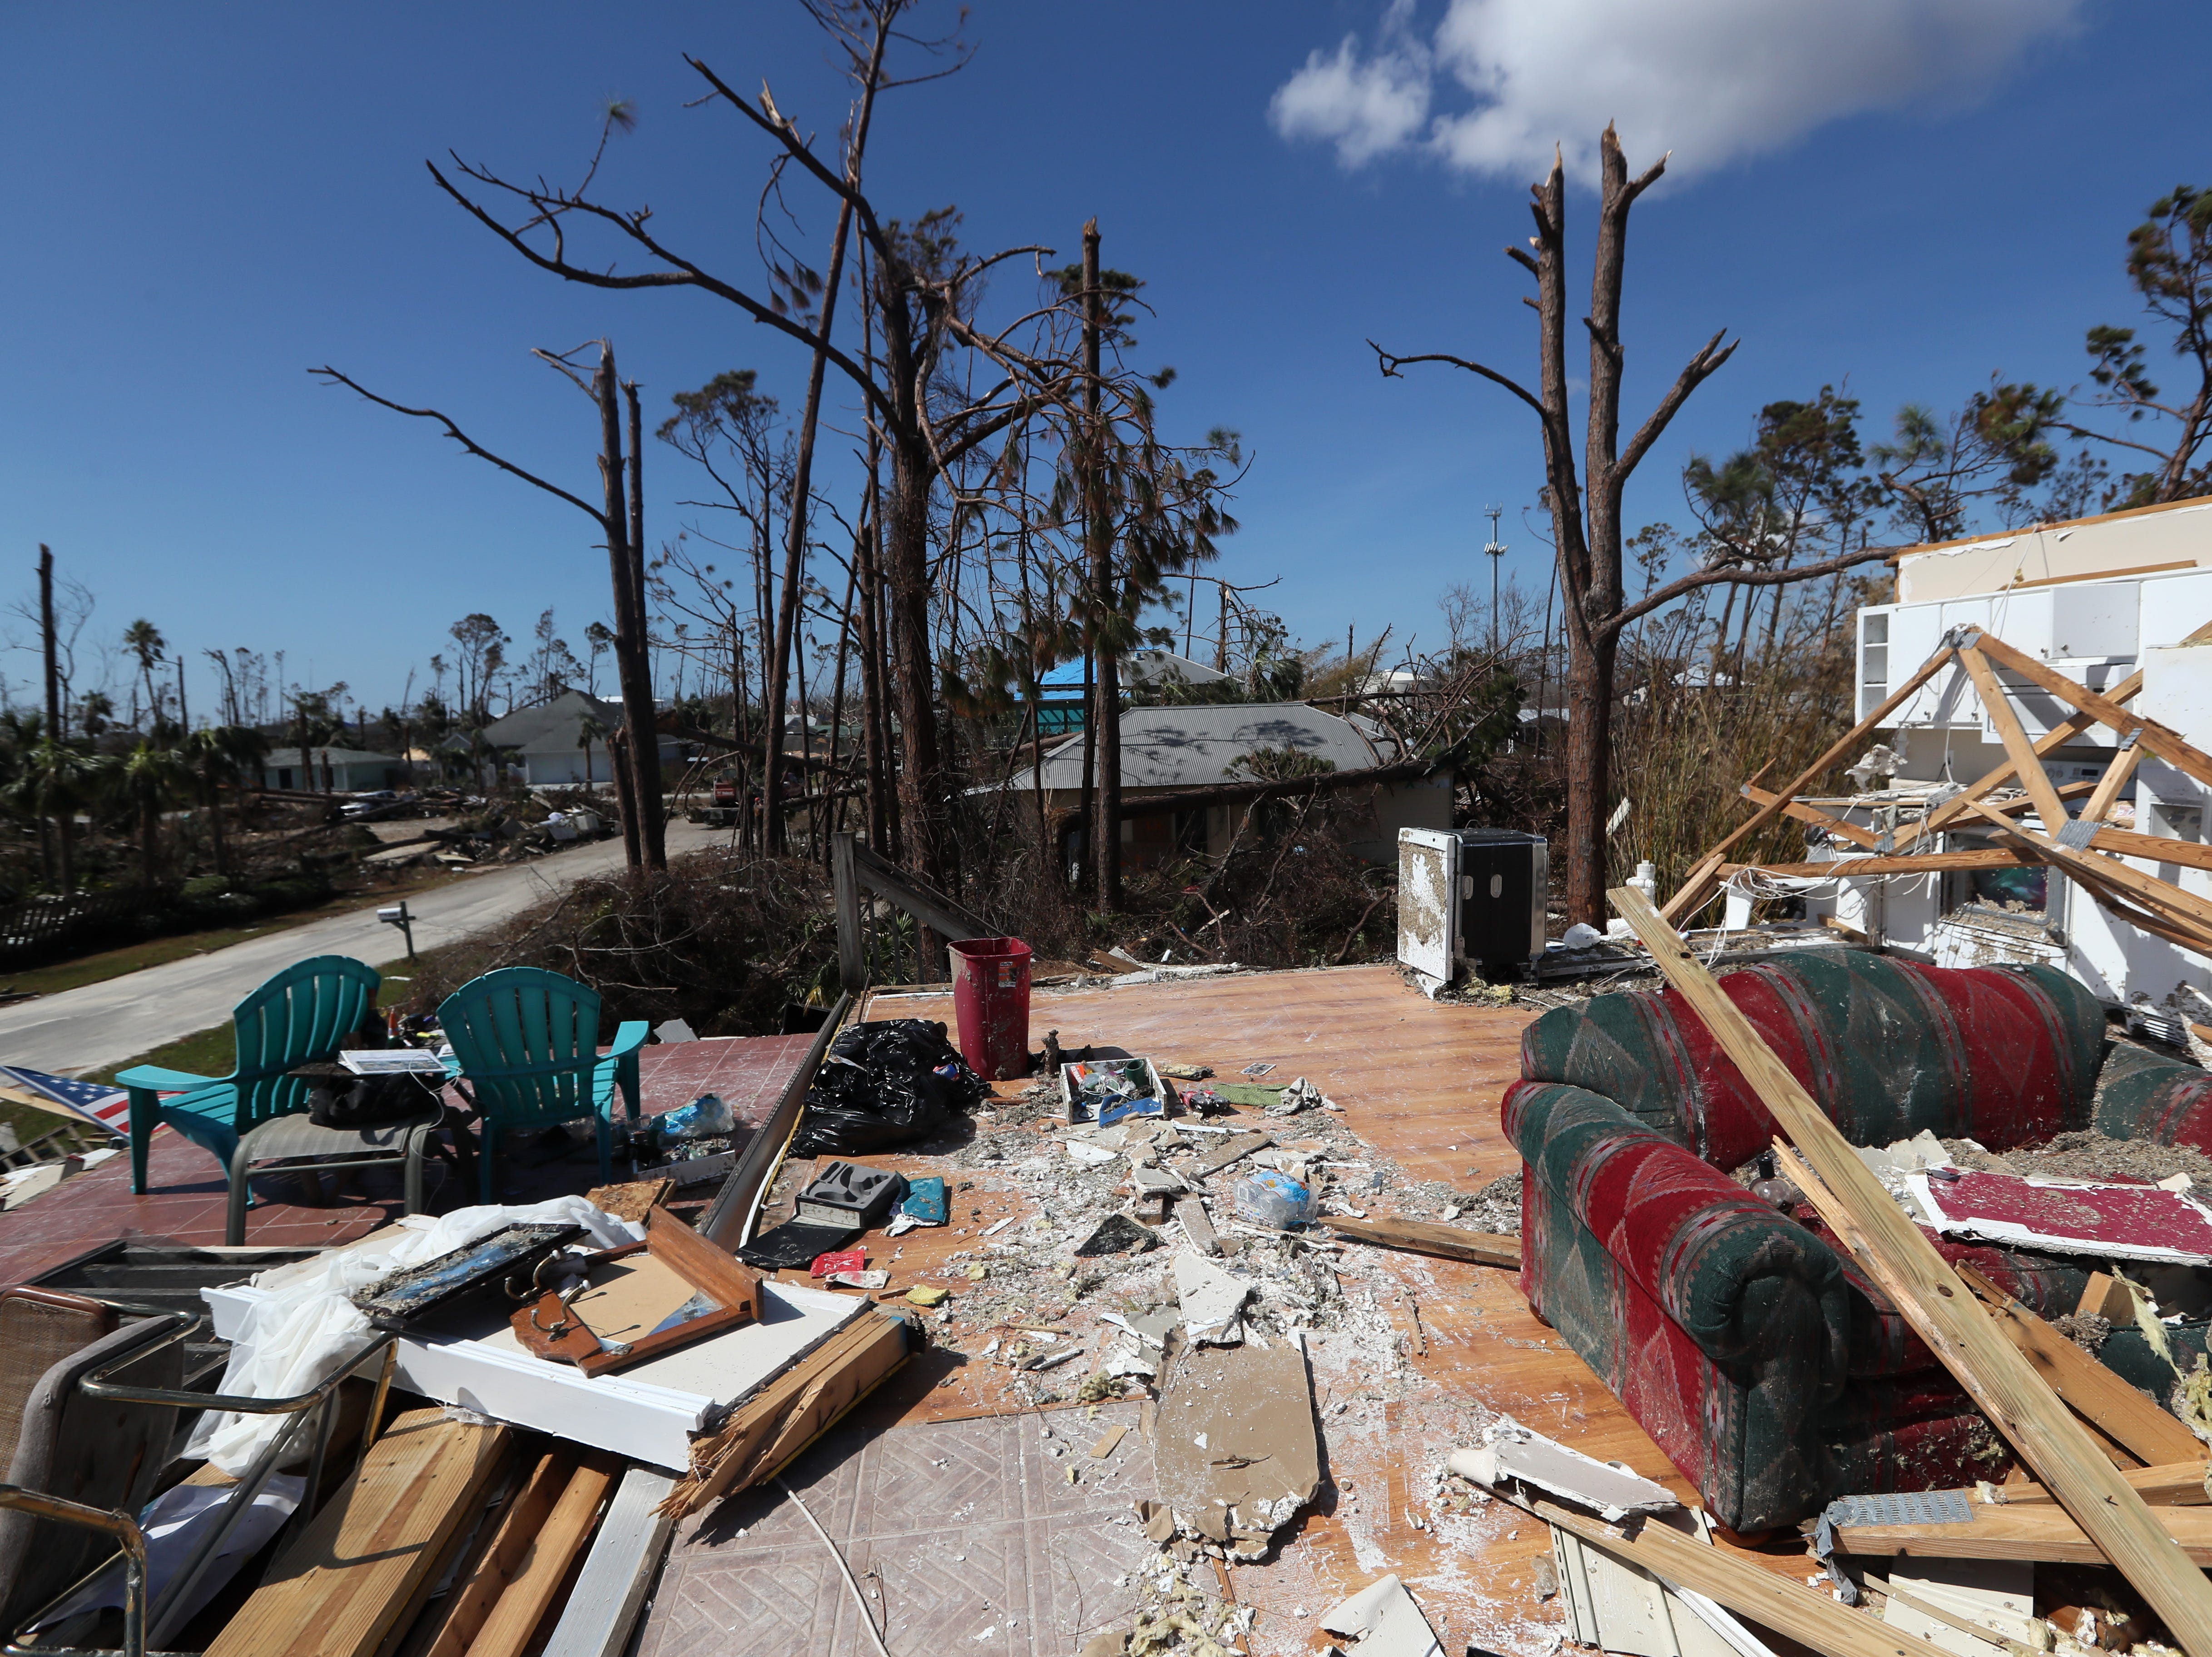 Mexico Beach resident Rick Barnes second-floor home, which was left destroyed on Wednesday, Oct. 17, 2018, one week after Hurricane Michael ripped through the coastal Florida town.